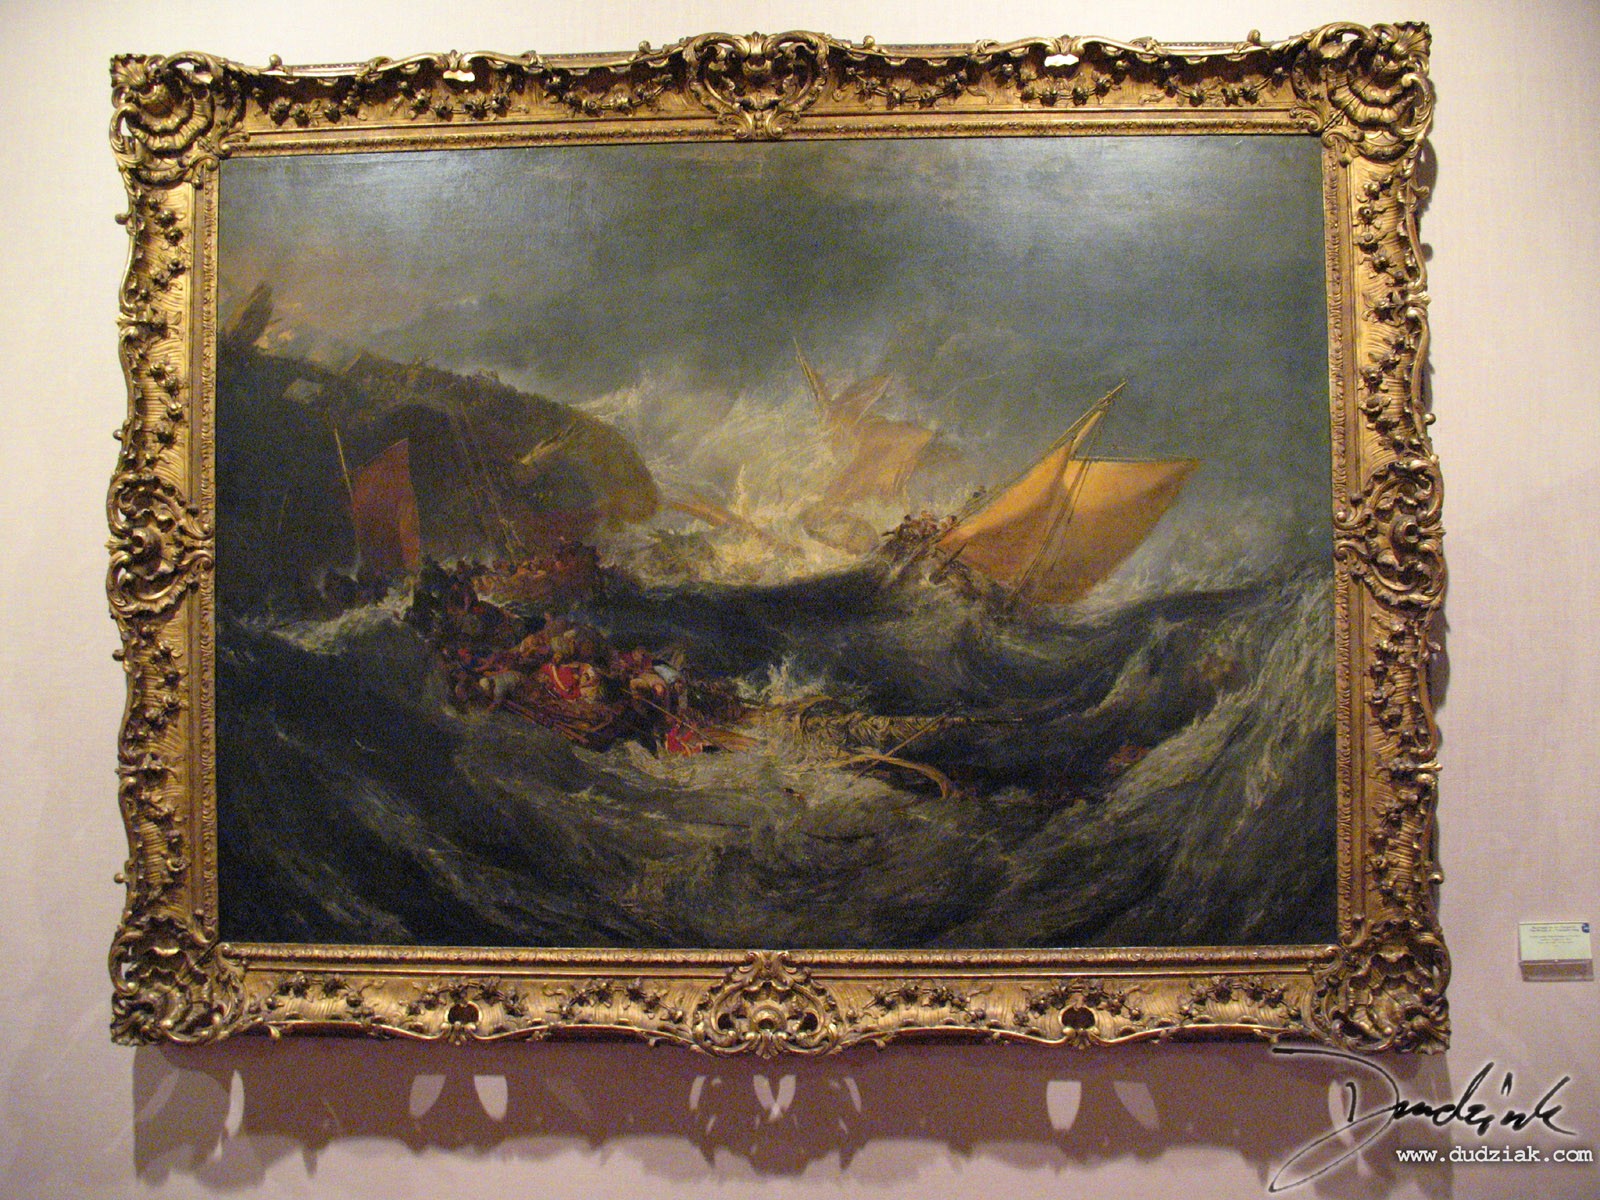 Joseph Mallord William Turner,  Calouste Gulbenkian Museum,  Lisbon Portugal,  The Wreck of a Transport Ship,  Lisboa,  Museu Calouste Gulbenkian